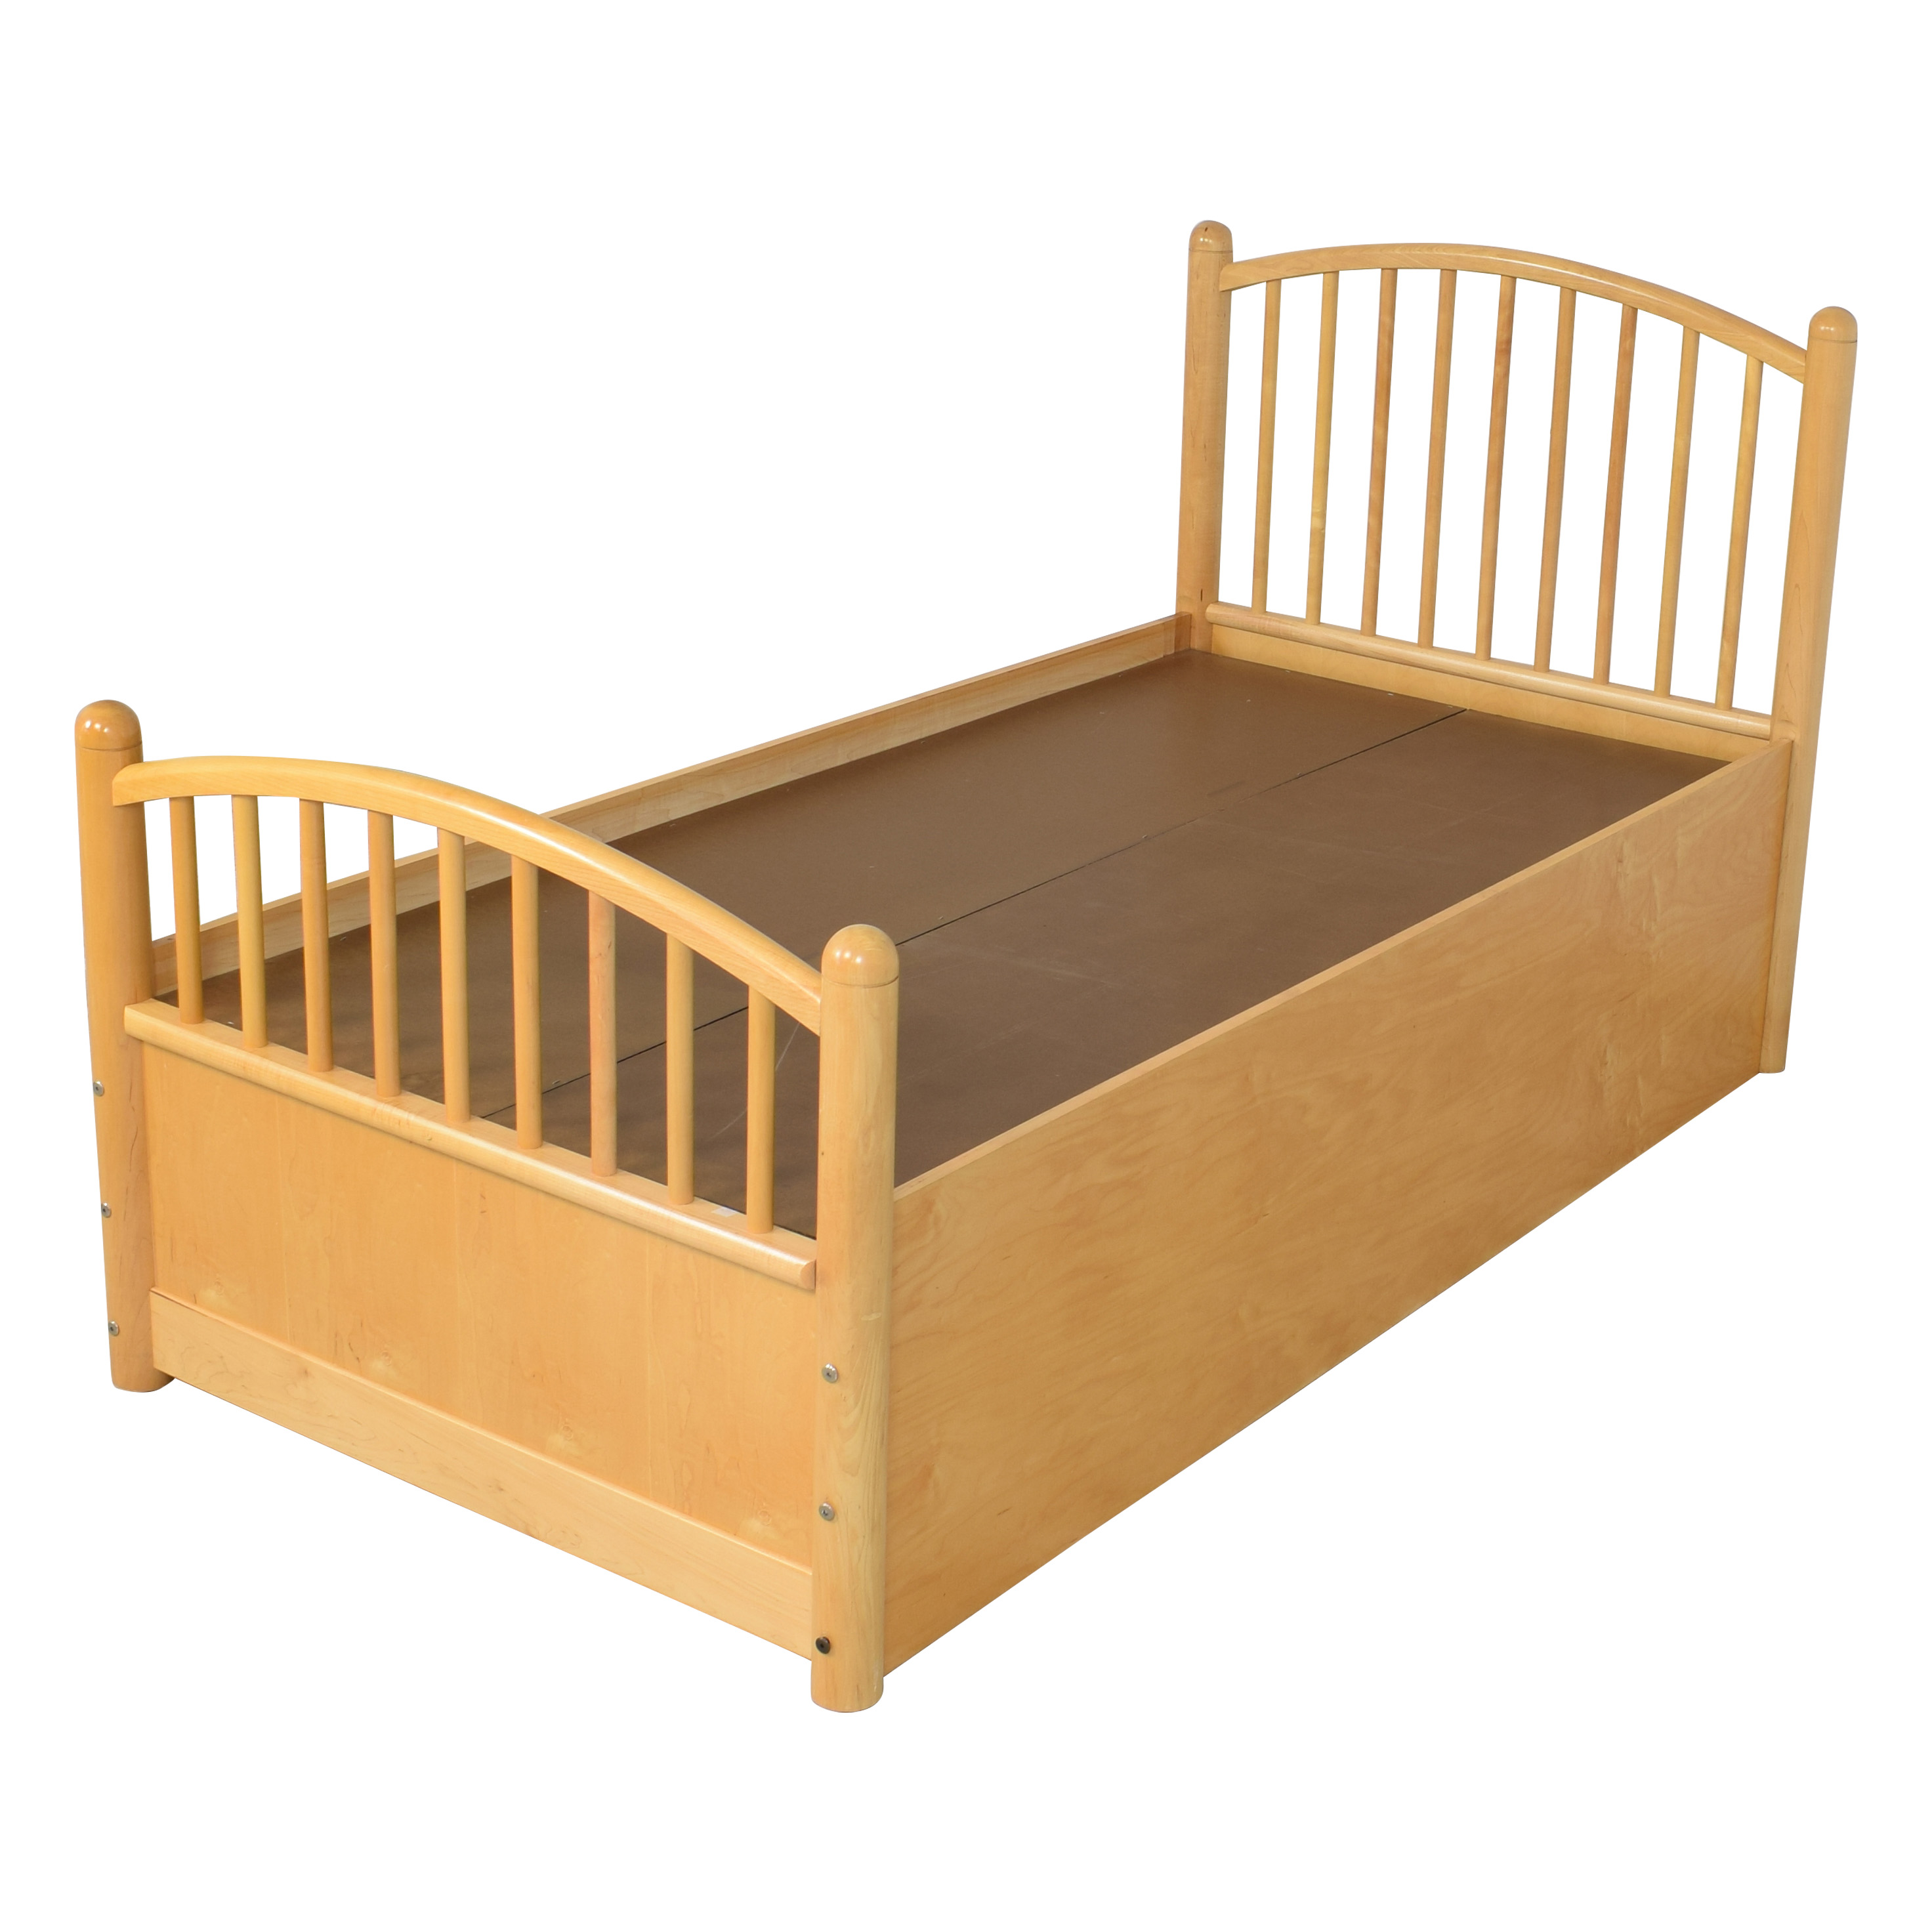 Stanley Furniture Stanley Furniture Twin Bed coupon